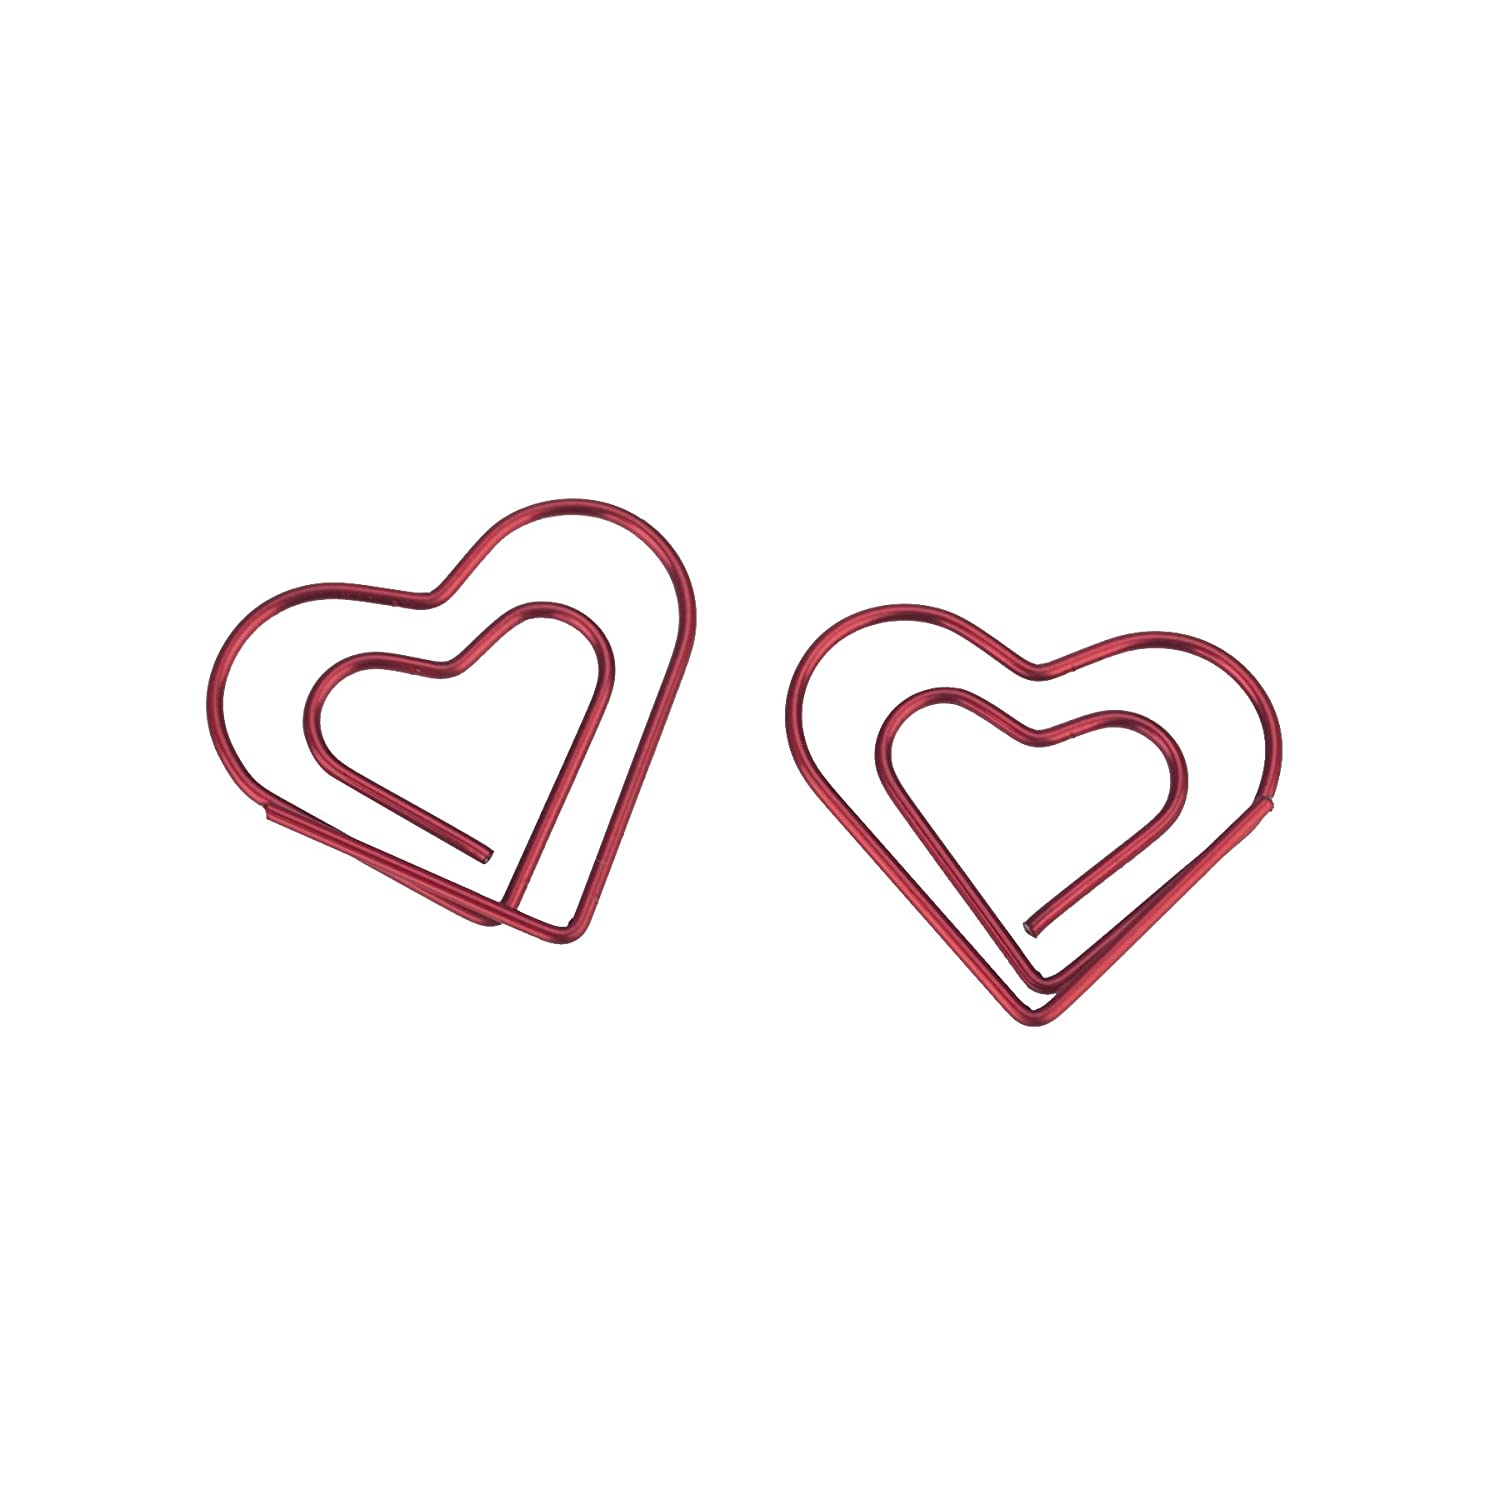 (Price/100 Clips) Officeship Red Heart Shaped Paper Clips, 1 1/8'L x 1 1/4'W-Red-100CLIPS 1 1/8L x 1 1/4W-Red-100CLIPS